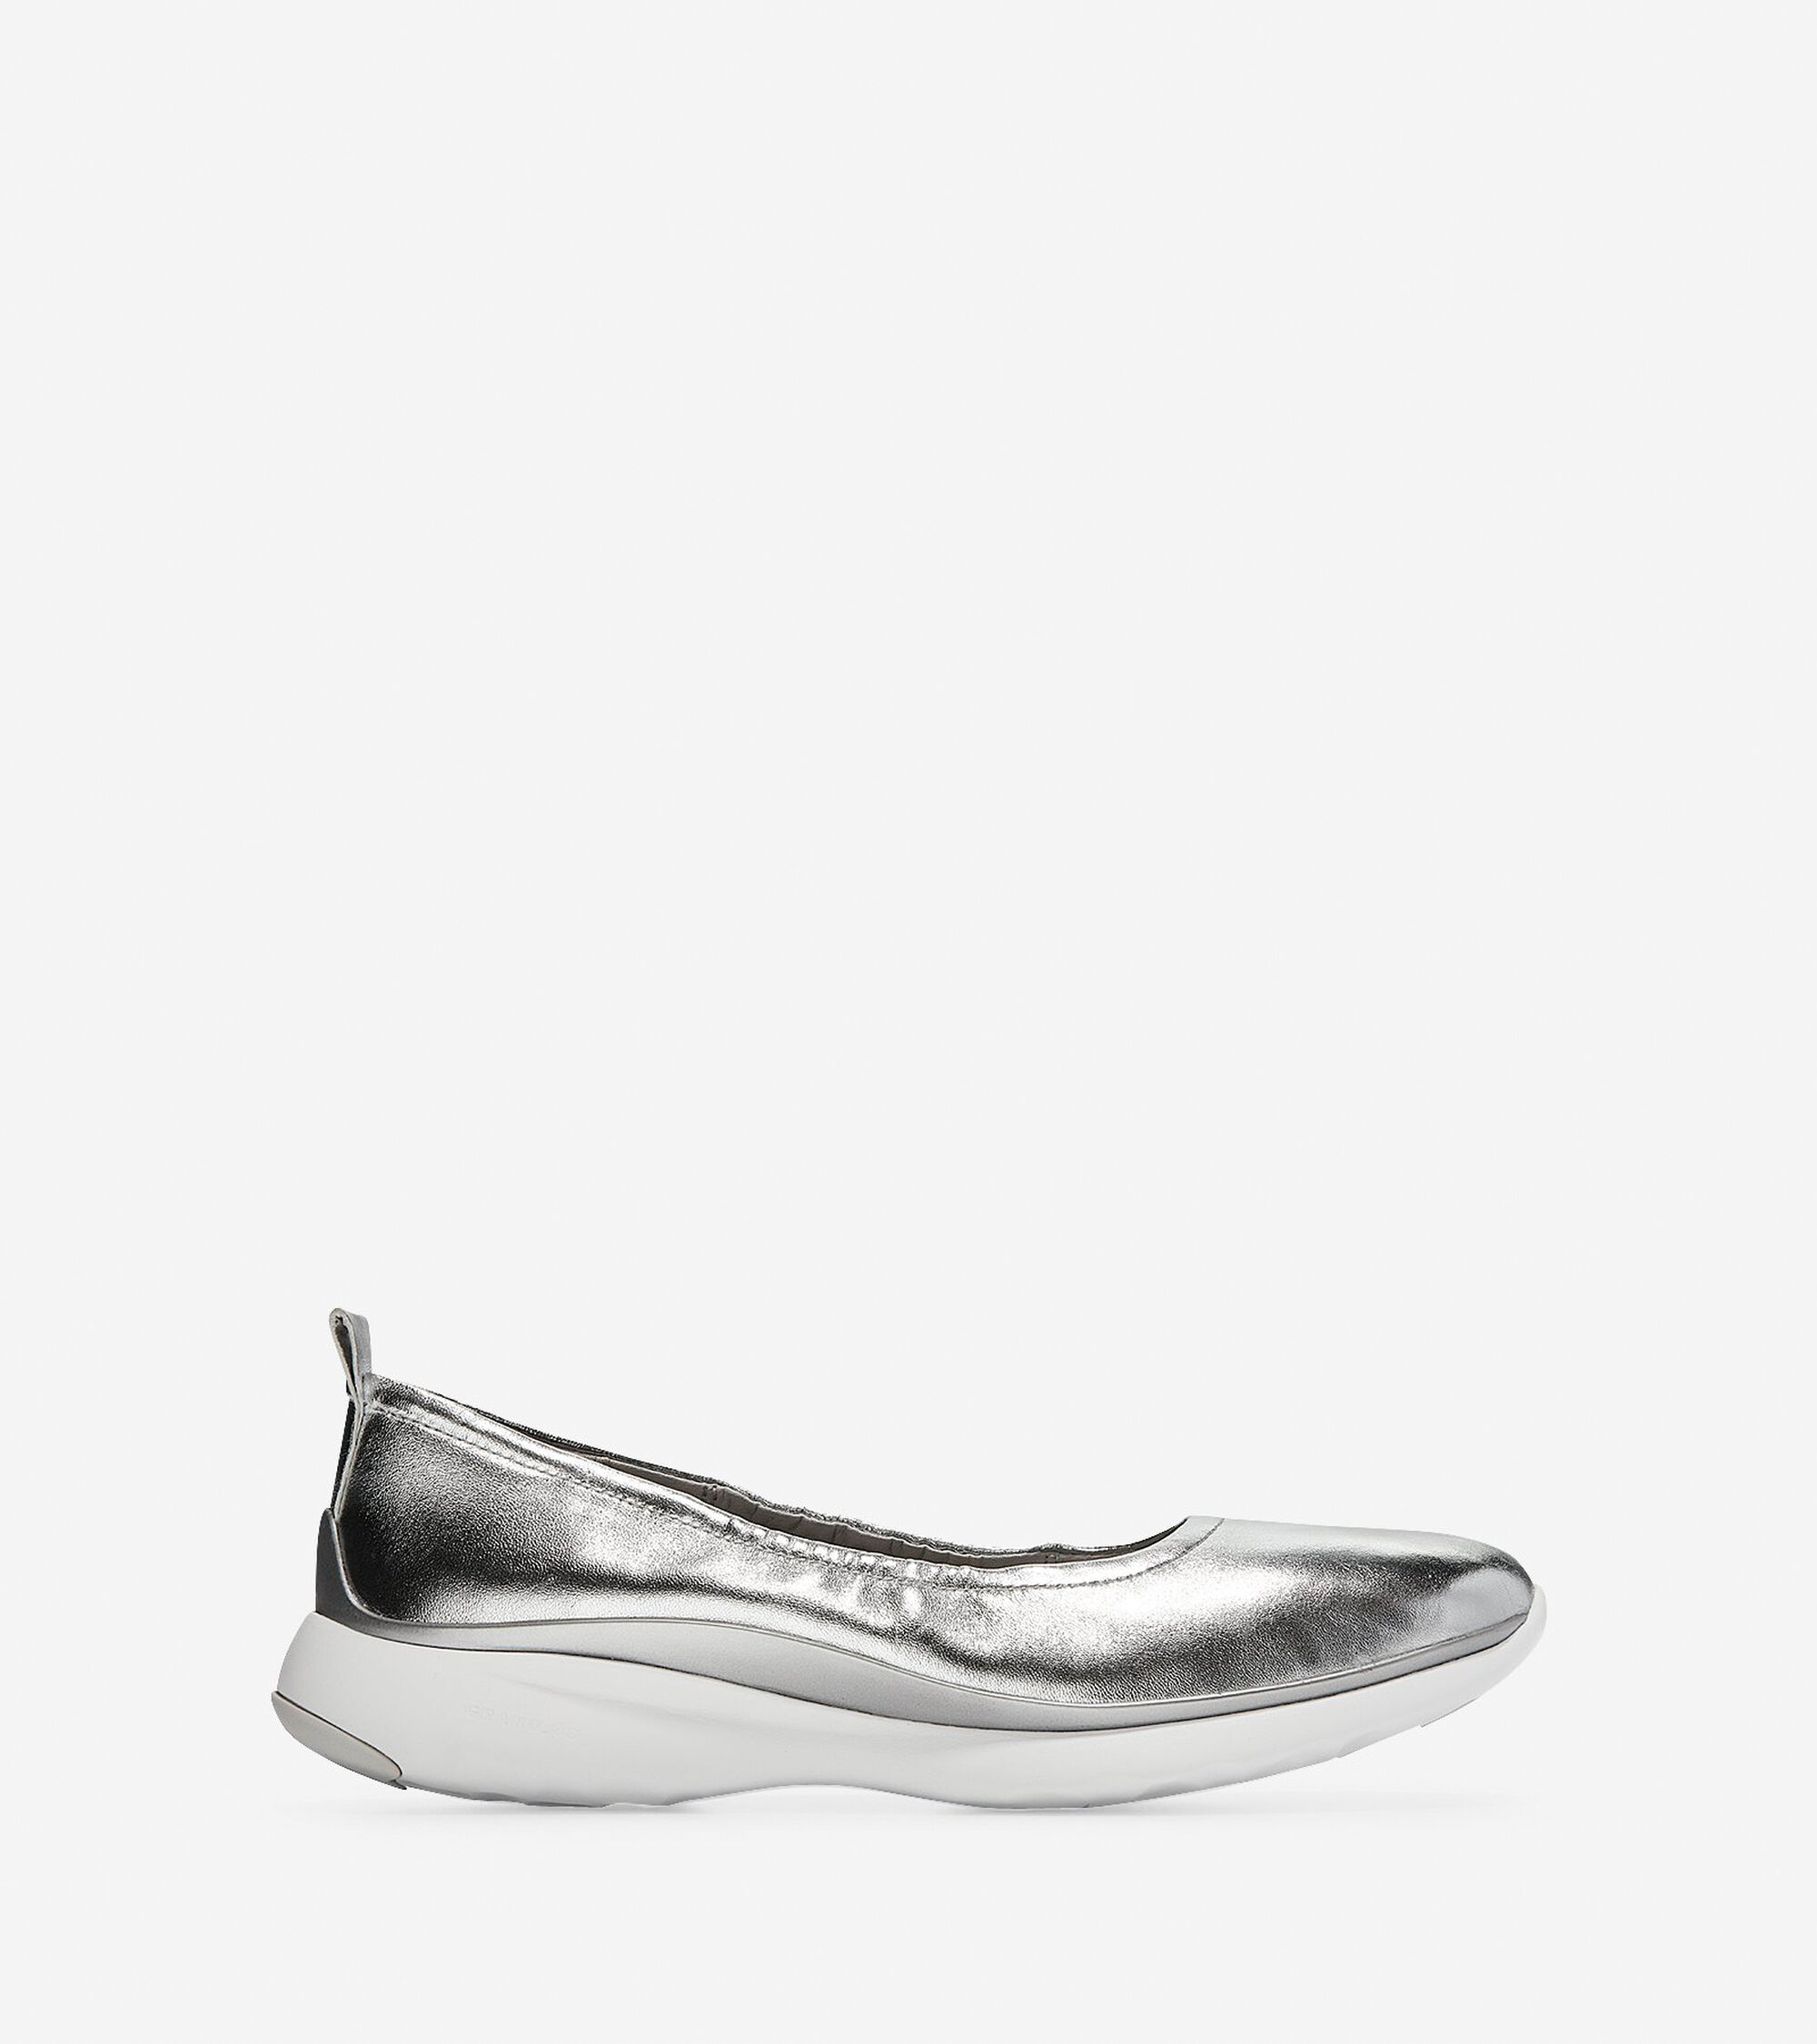 e7c6b6d213f Women s 3.ZEROGRAND Ruched Slip-On Ballet Flats in Argento